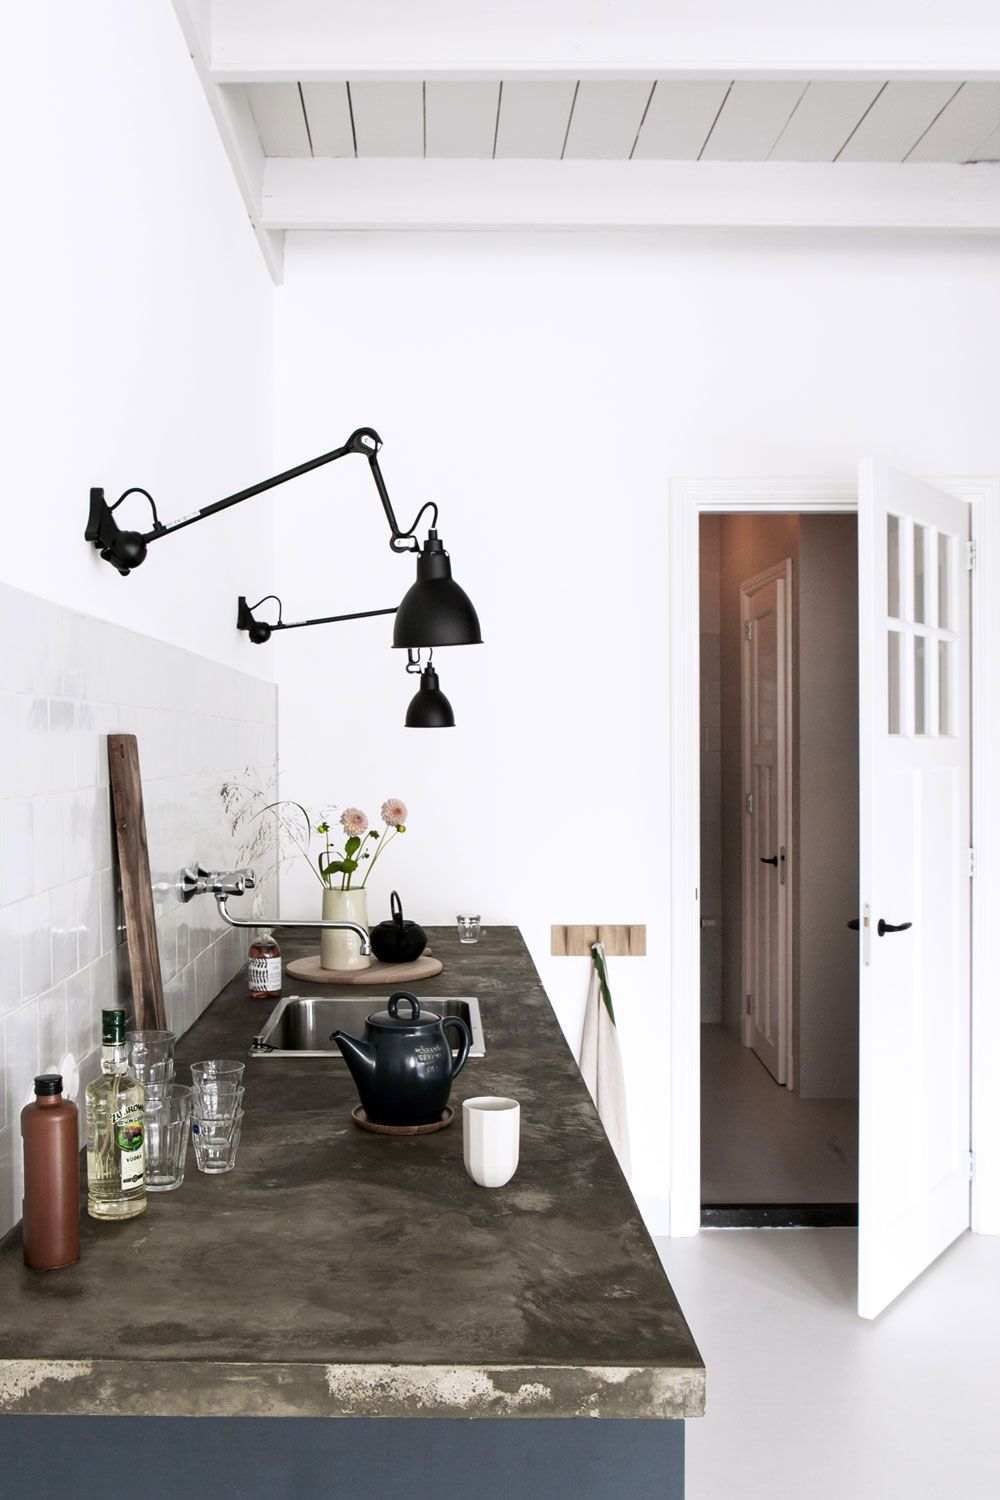 Black Wall Lighting Fixtures In Industrial Chic Kitchen Sfgirlbybay Kitchen Wall Lights Kitchen Lighting Design Home Decor Kitchen Wall mounted lights for kitchen